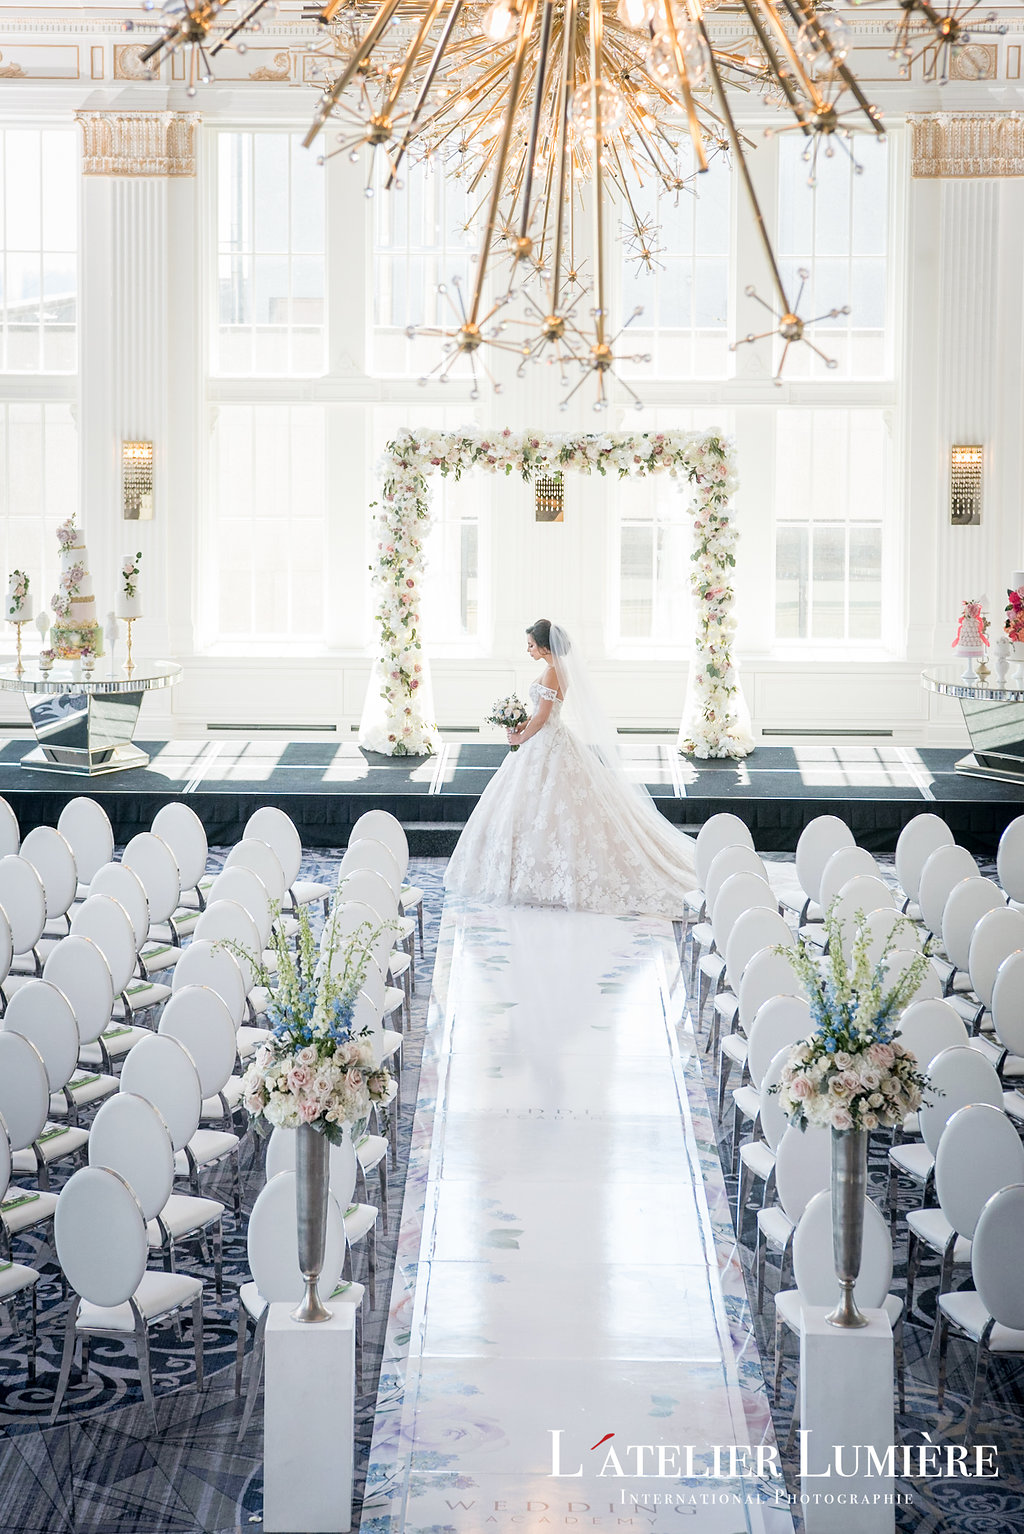 Wedding Academy at the Omni King Edward Hotel - Classic elegance wedding inspiration and a gown from Ines Di Santo